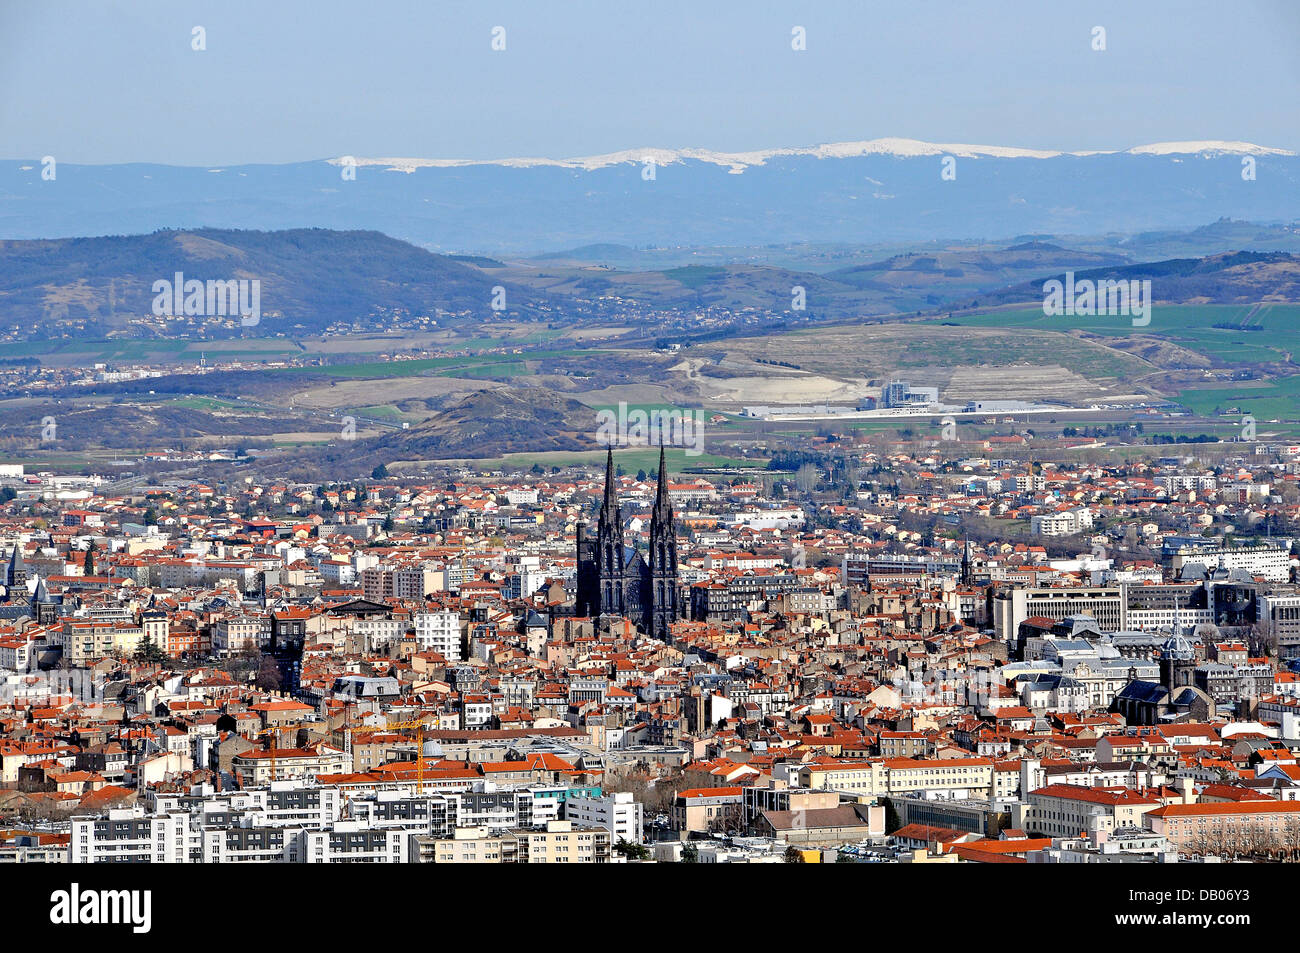 Aerial view of clermont ferrand puy de dome auvergne massif central stock photo royalty free - Massif jardin japonais clermont ferrand ...